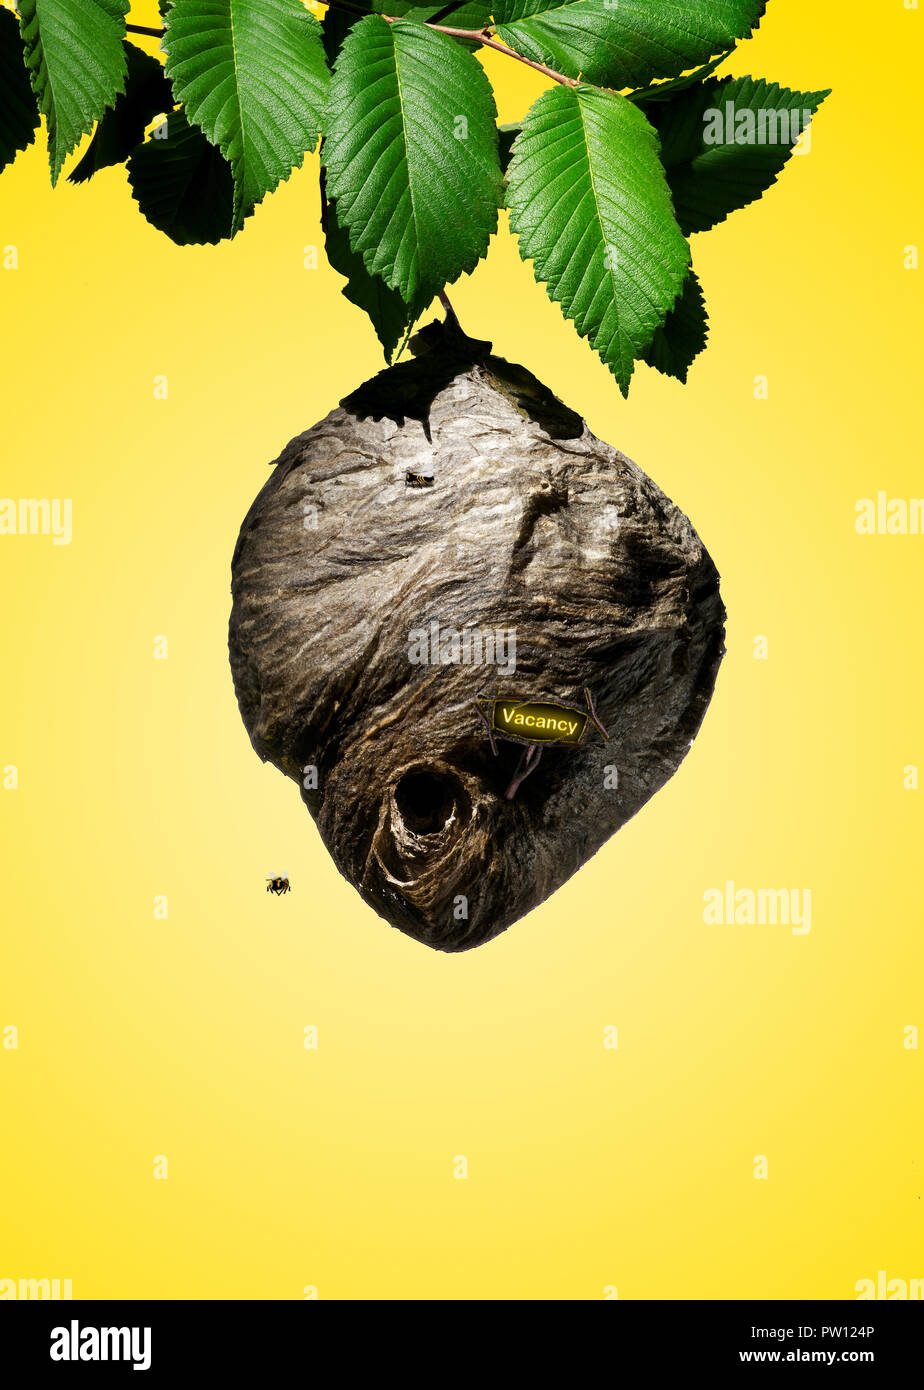 Concept Bee Hive with a sign Vacancy,  Structure, Nest, Missing Bees, Disappearing Bees, CCD, Colony Collapse Disorder - Stock Image